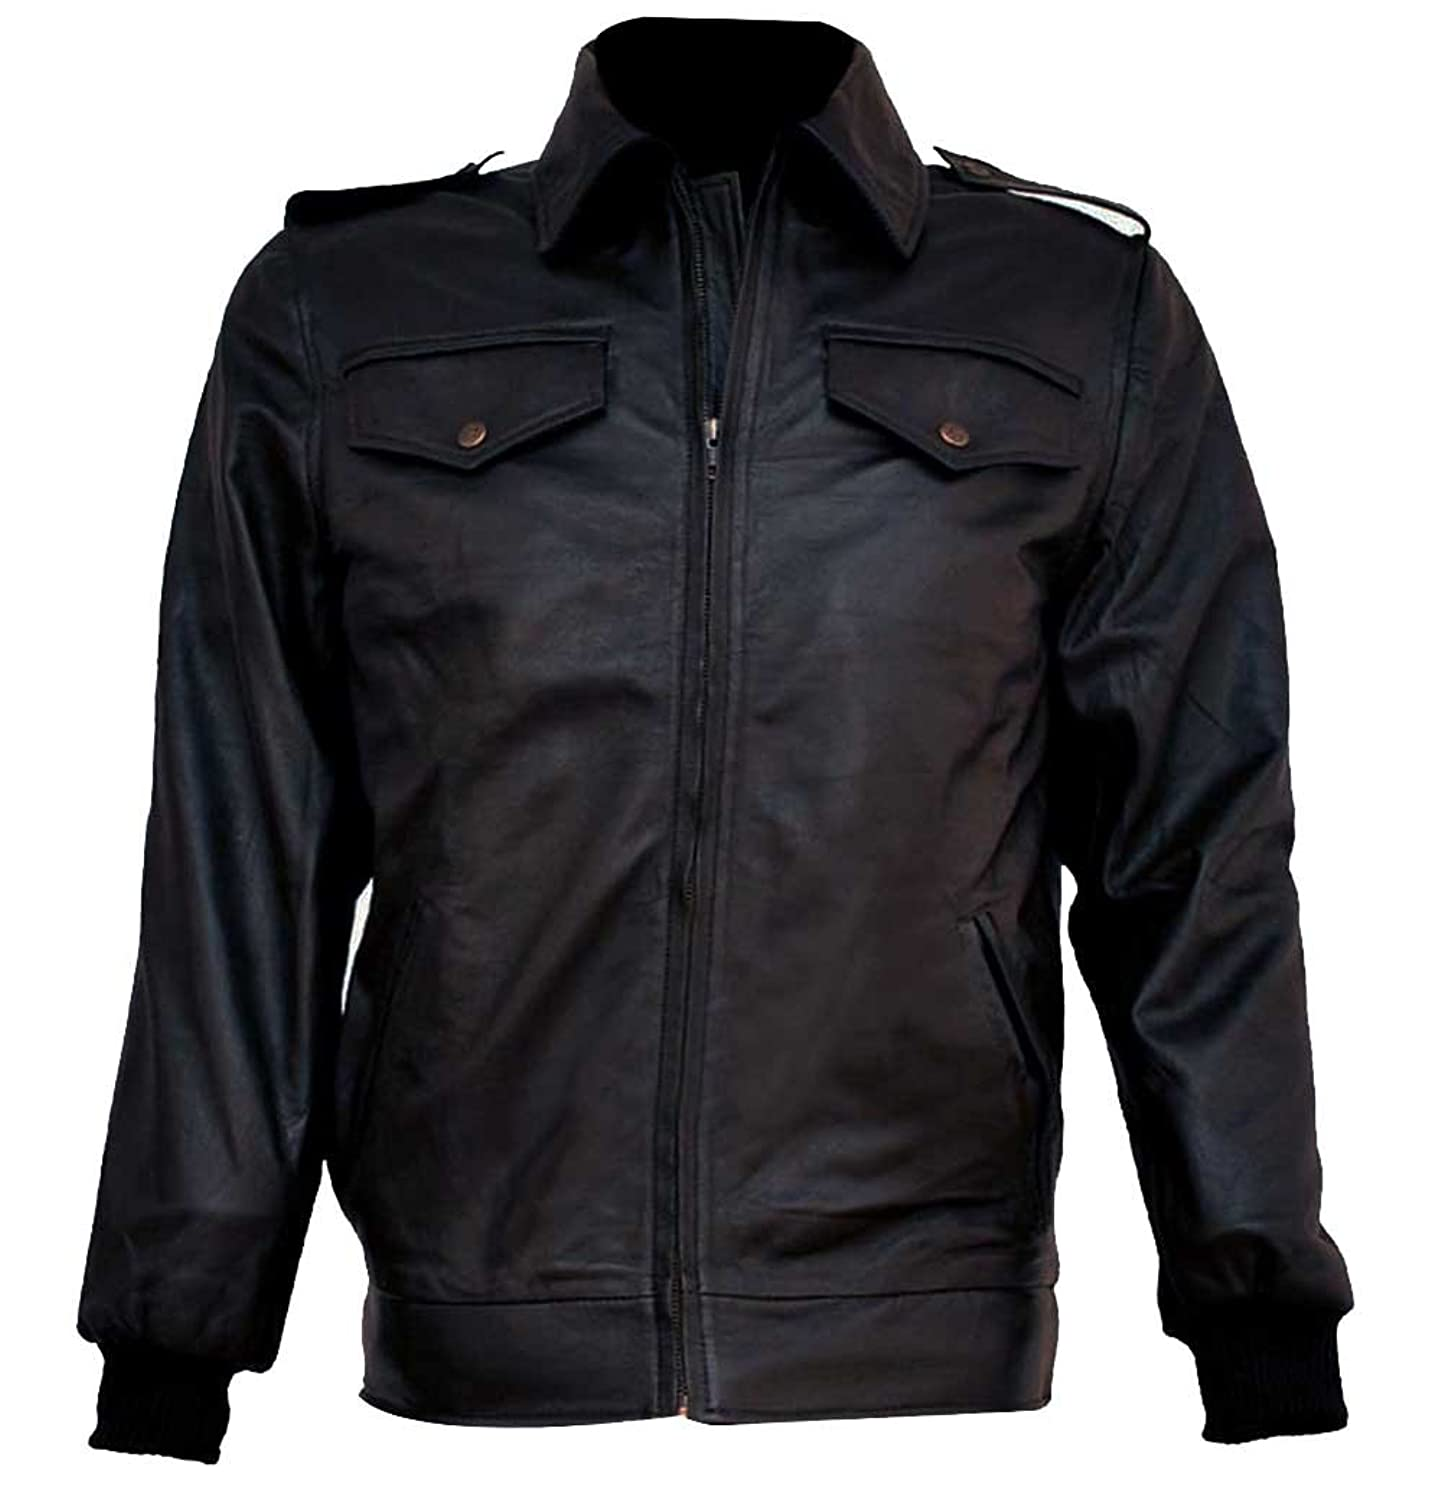 Chris Evans The Avengers Steve Rogers Mens Stylish Black Faux Leather Jacket